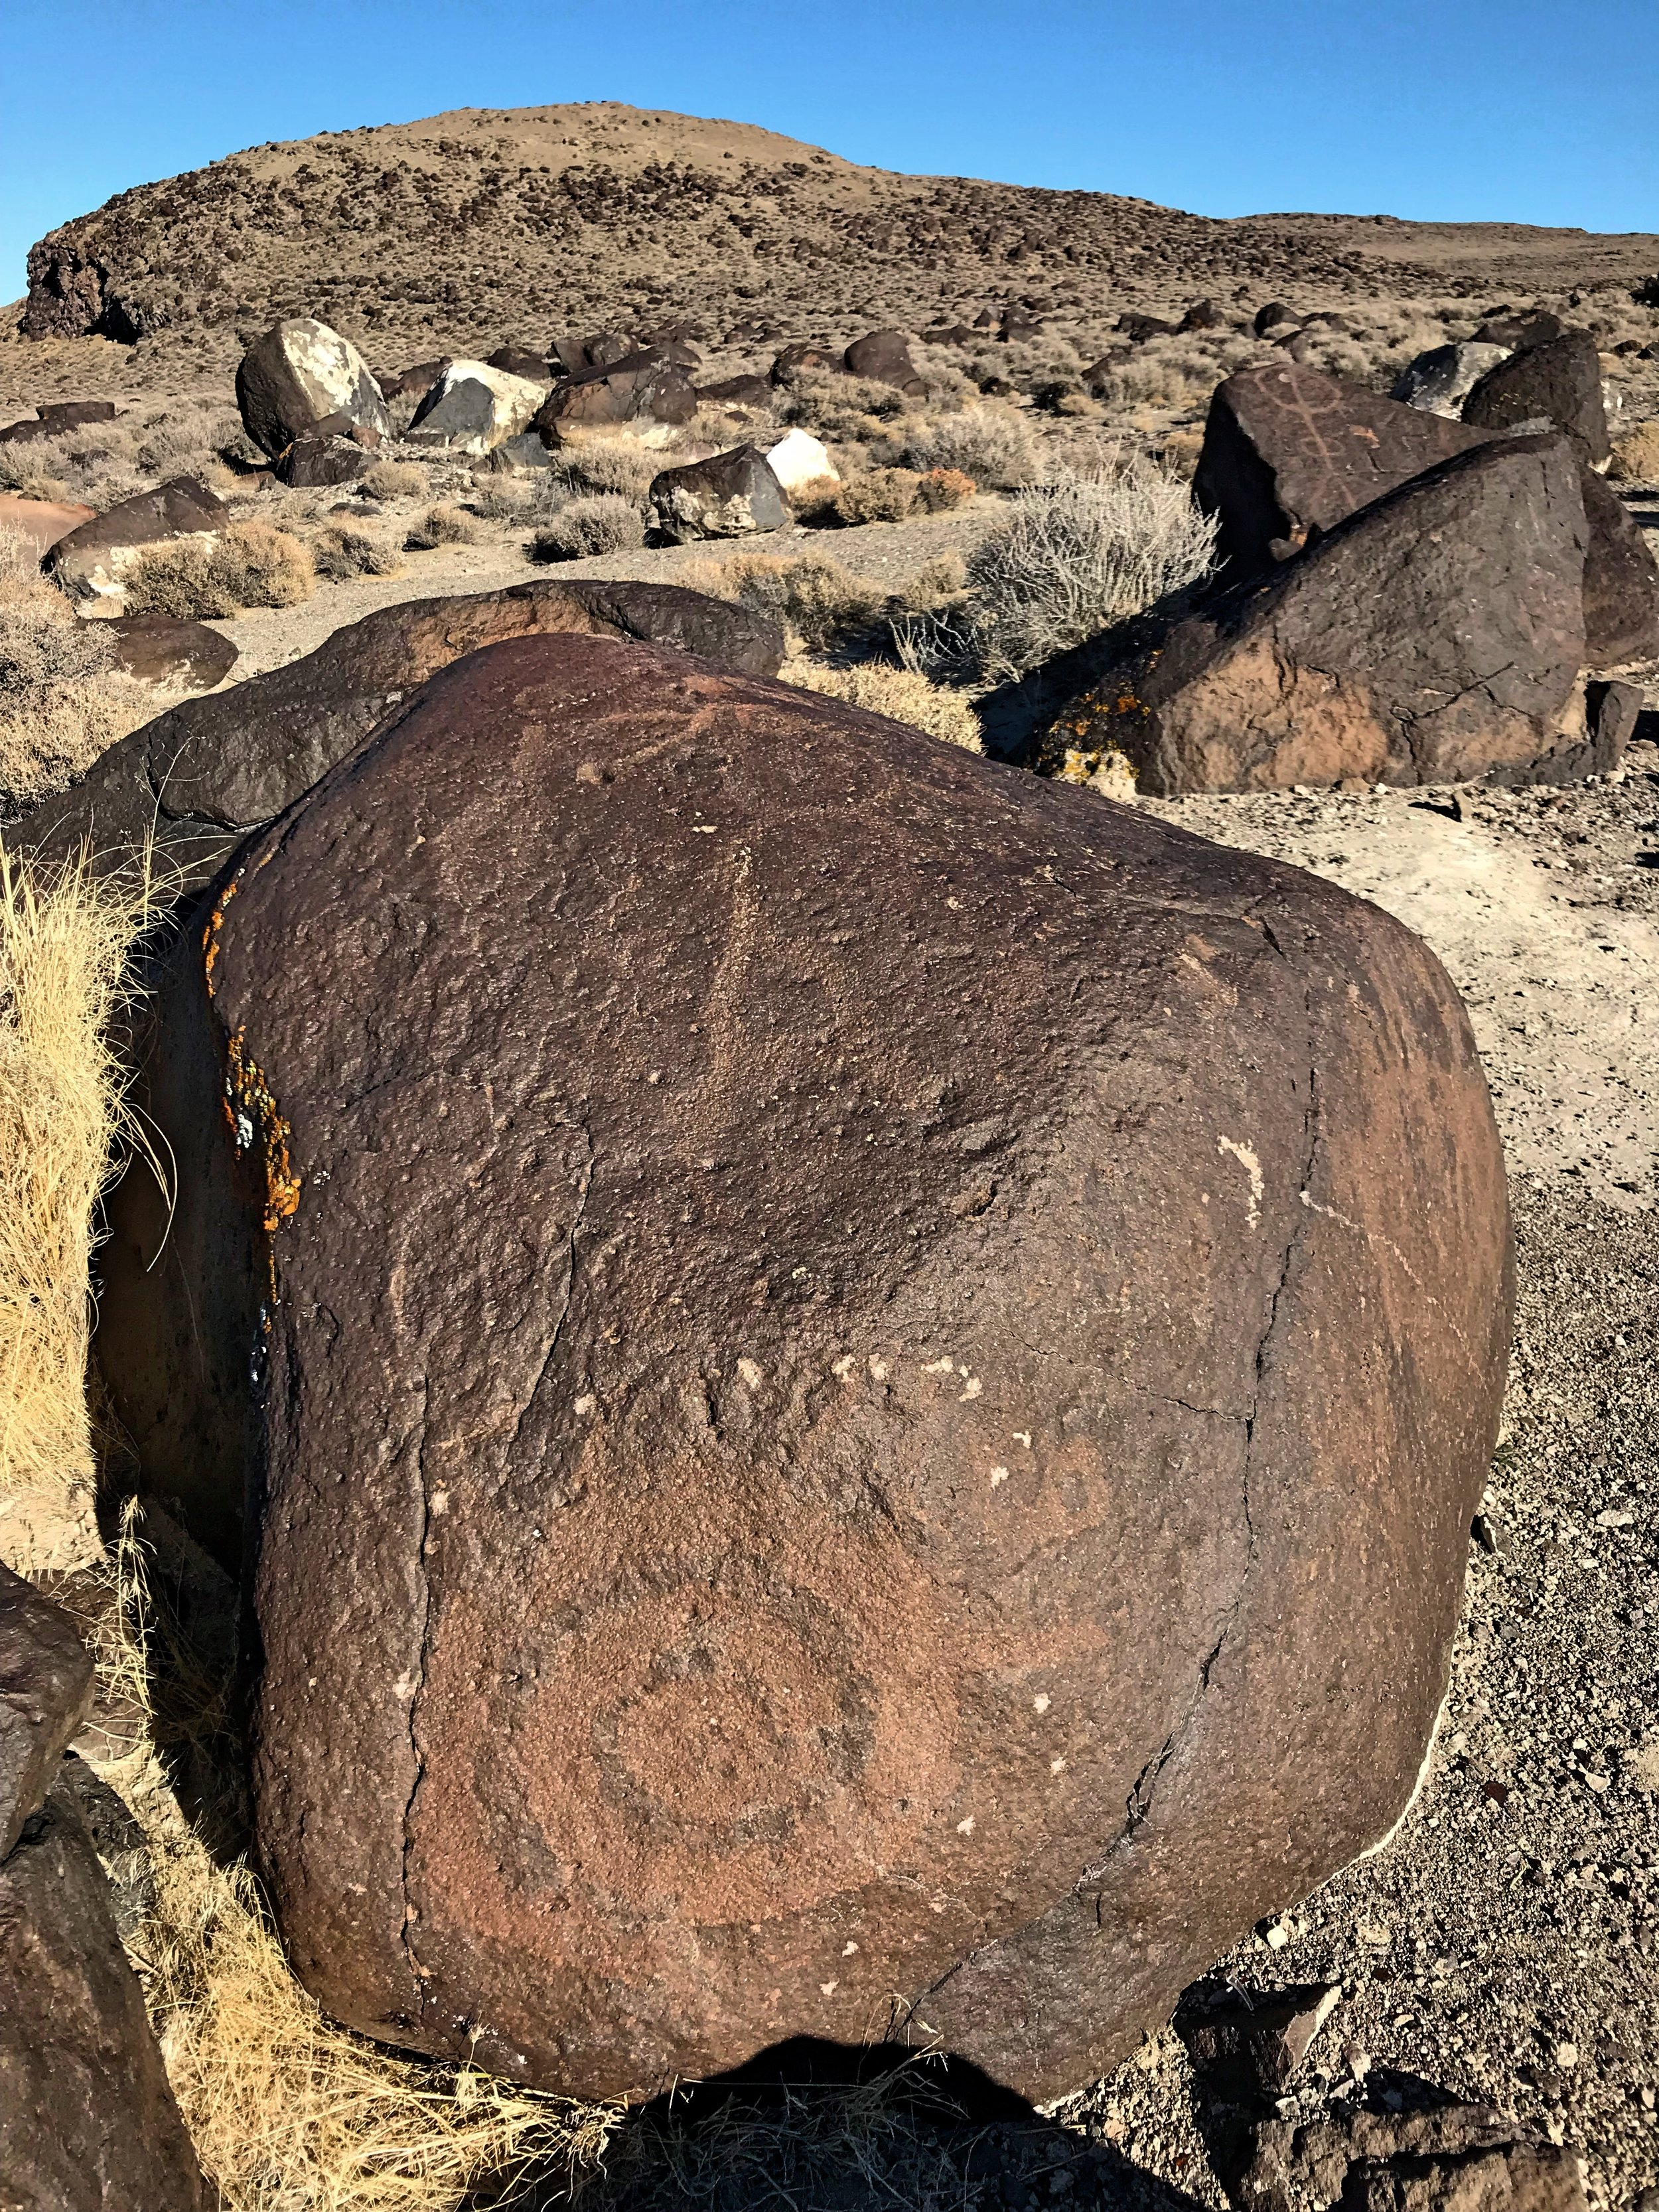 The older petroglyphs have wider lines and they have been partially regained their patina, like the spiral near the bottom of this rock.